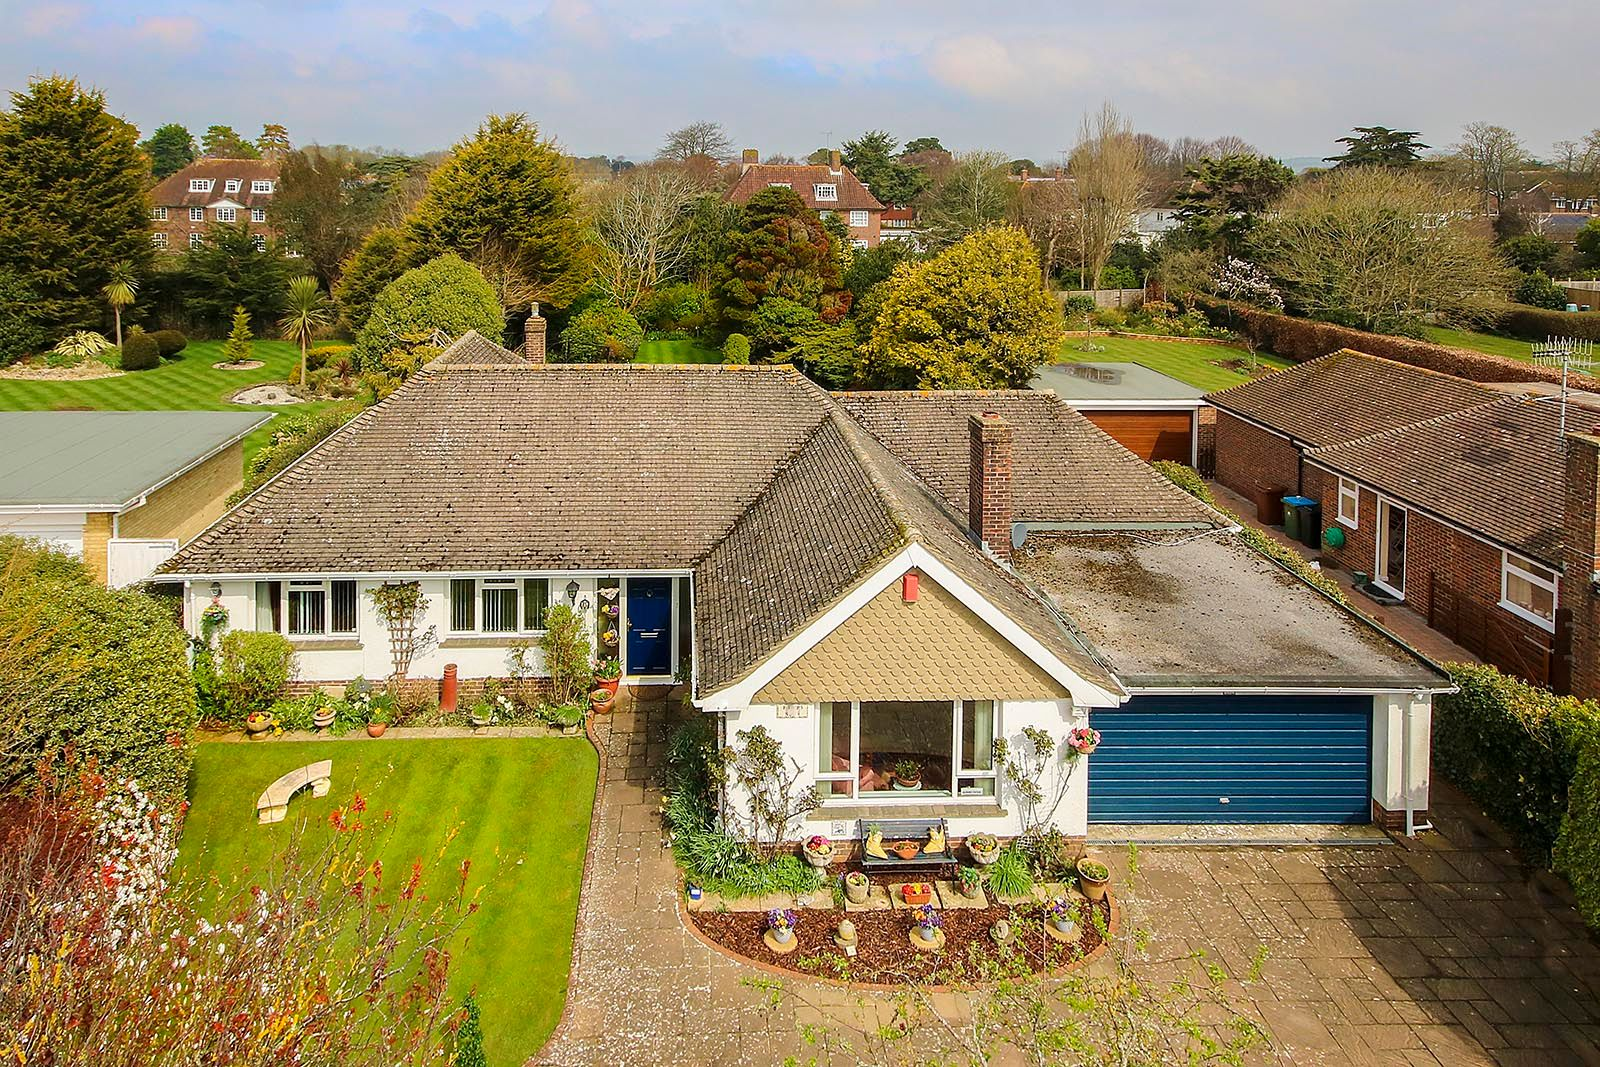 3 bed Bungalow for sale in East Preston - Property Image 1